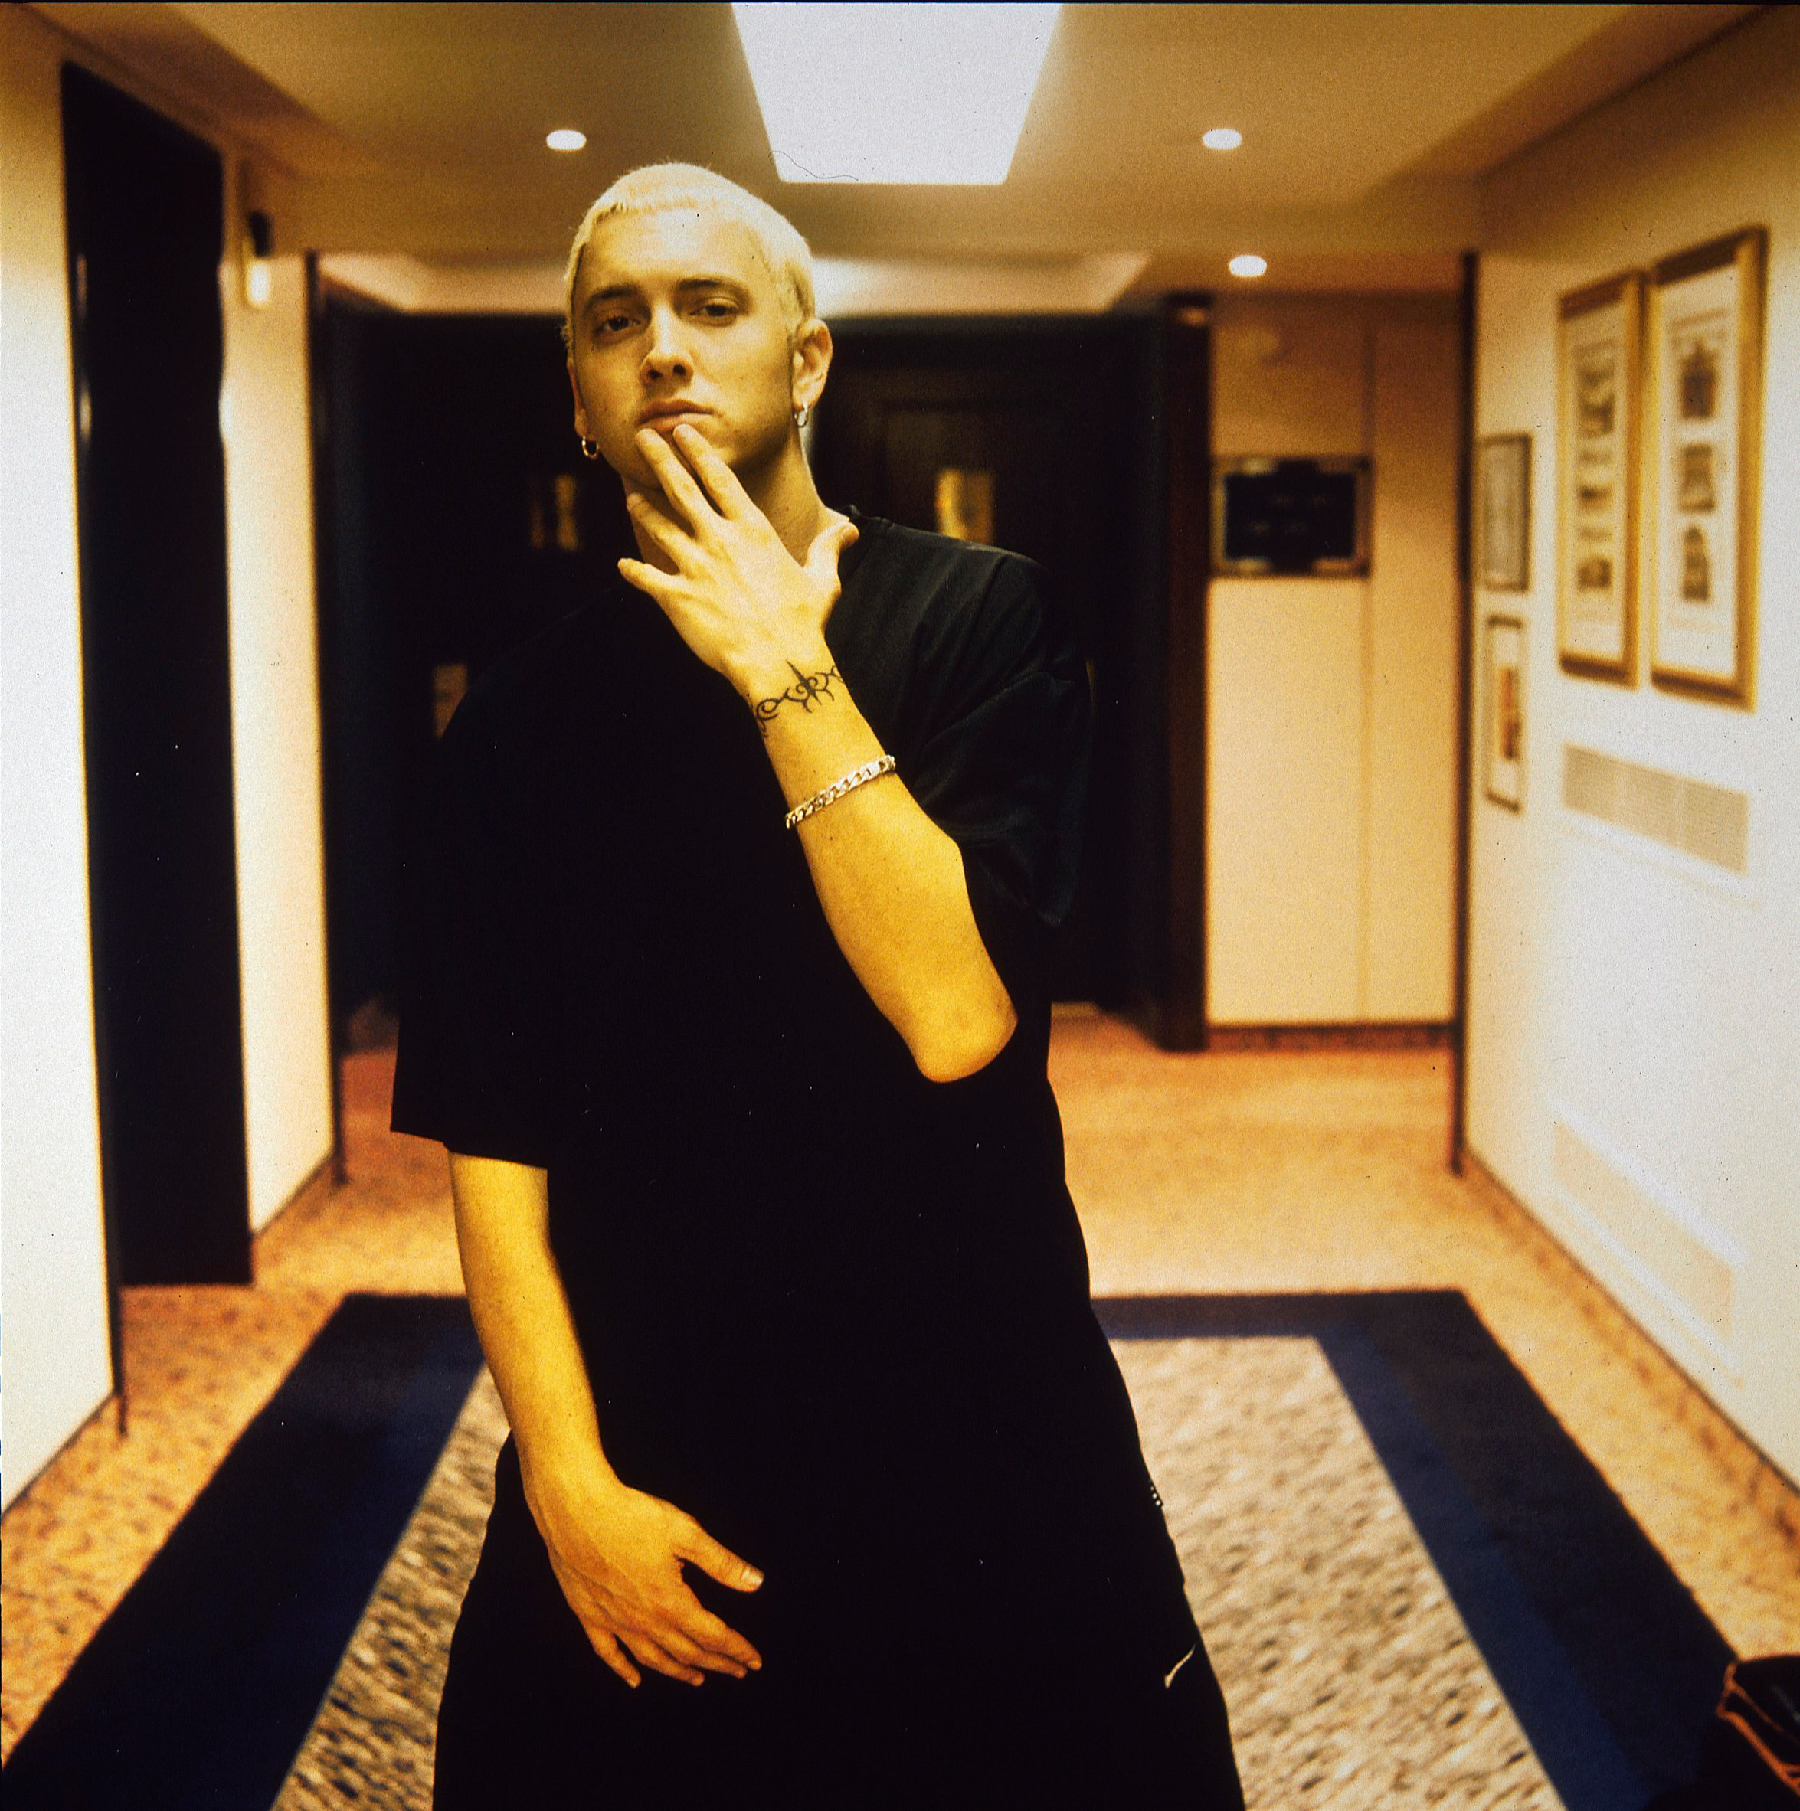 eminem most controversial songs